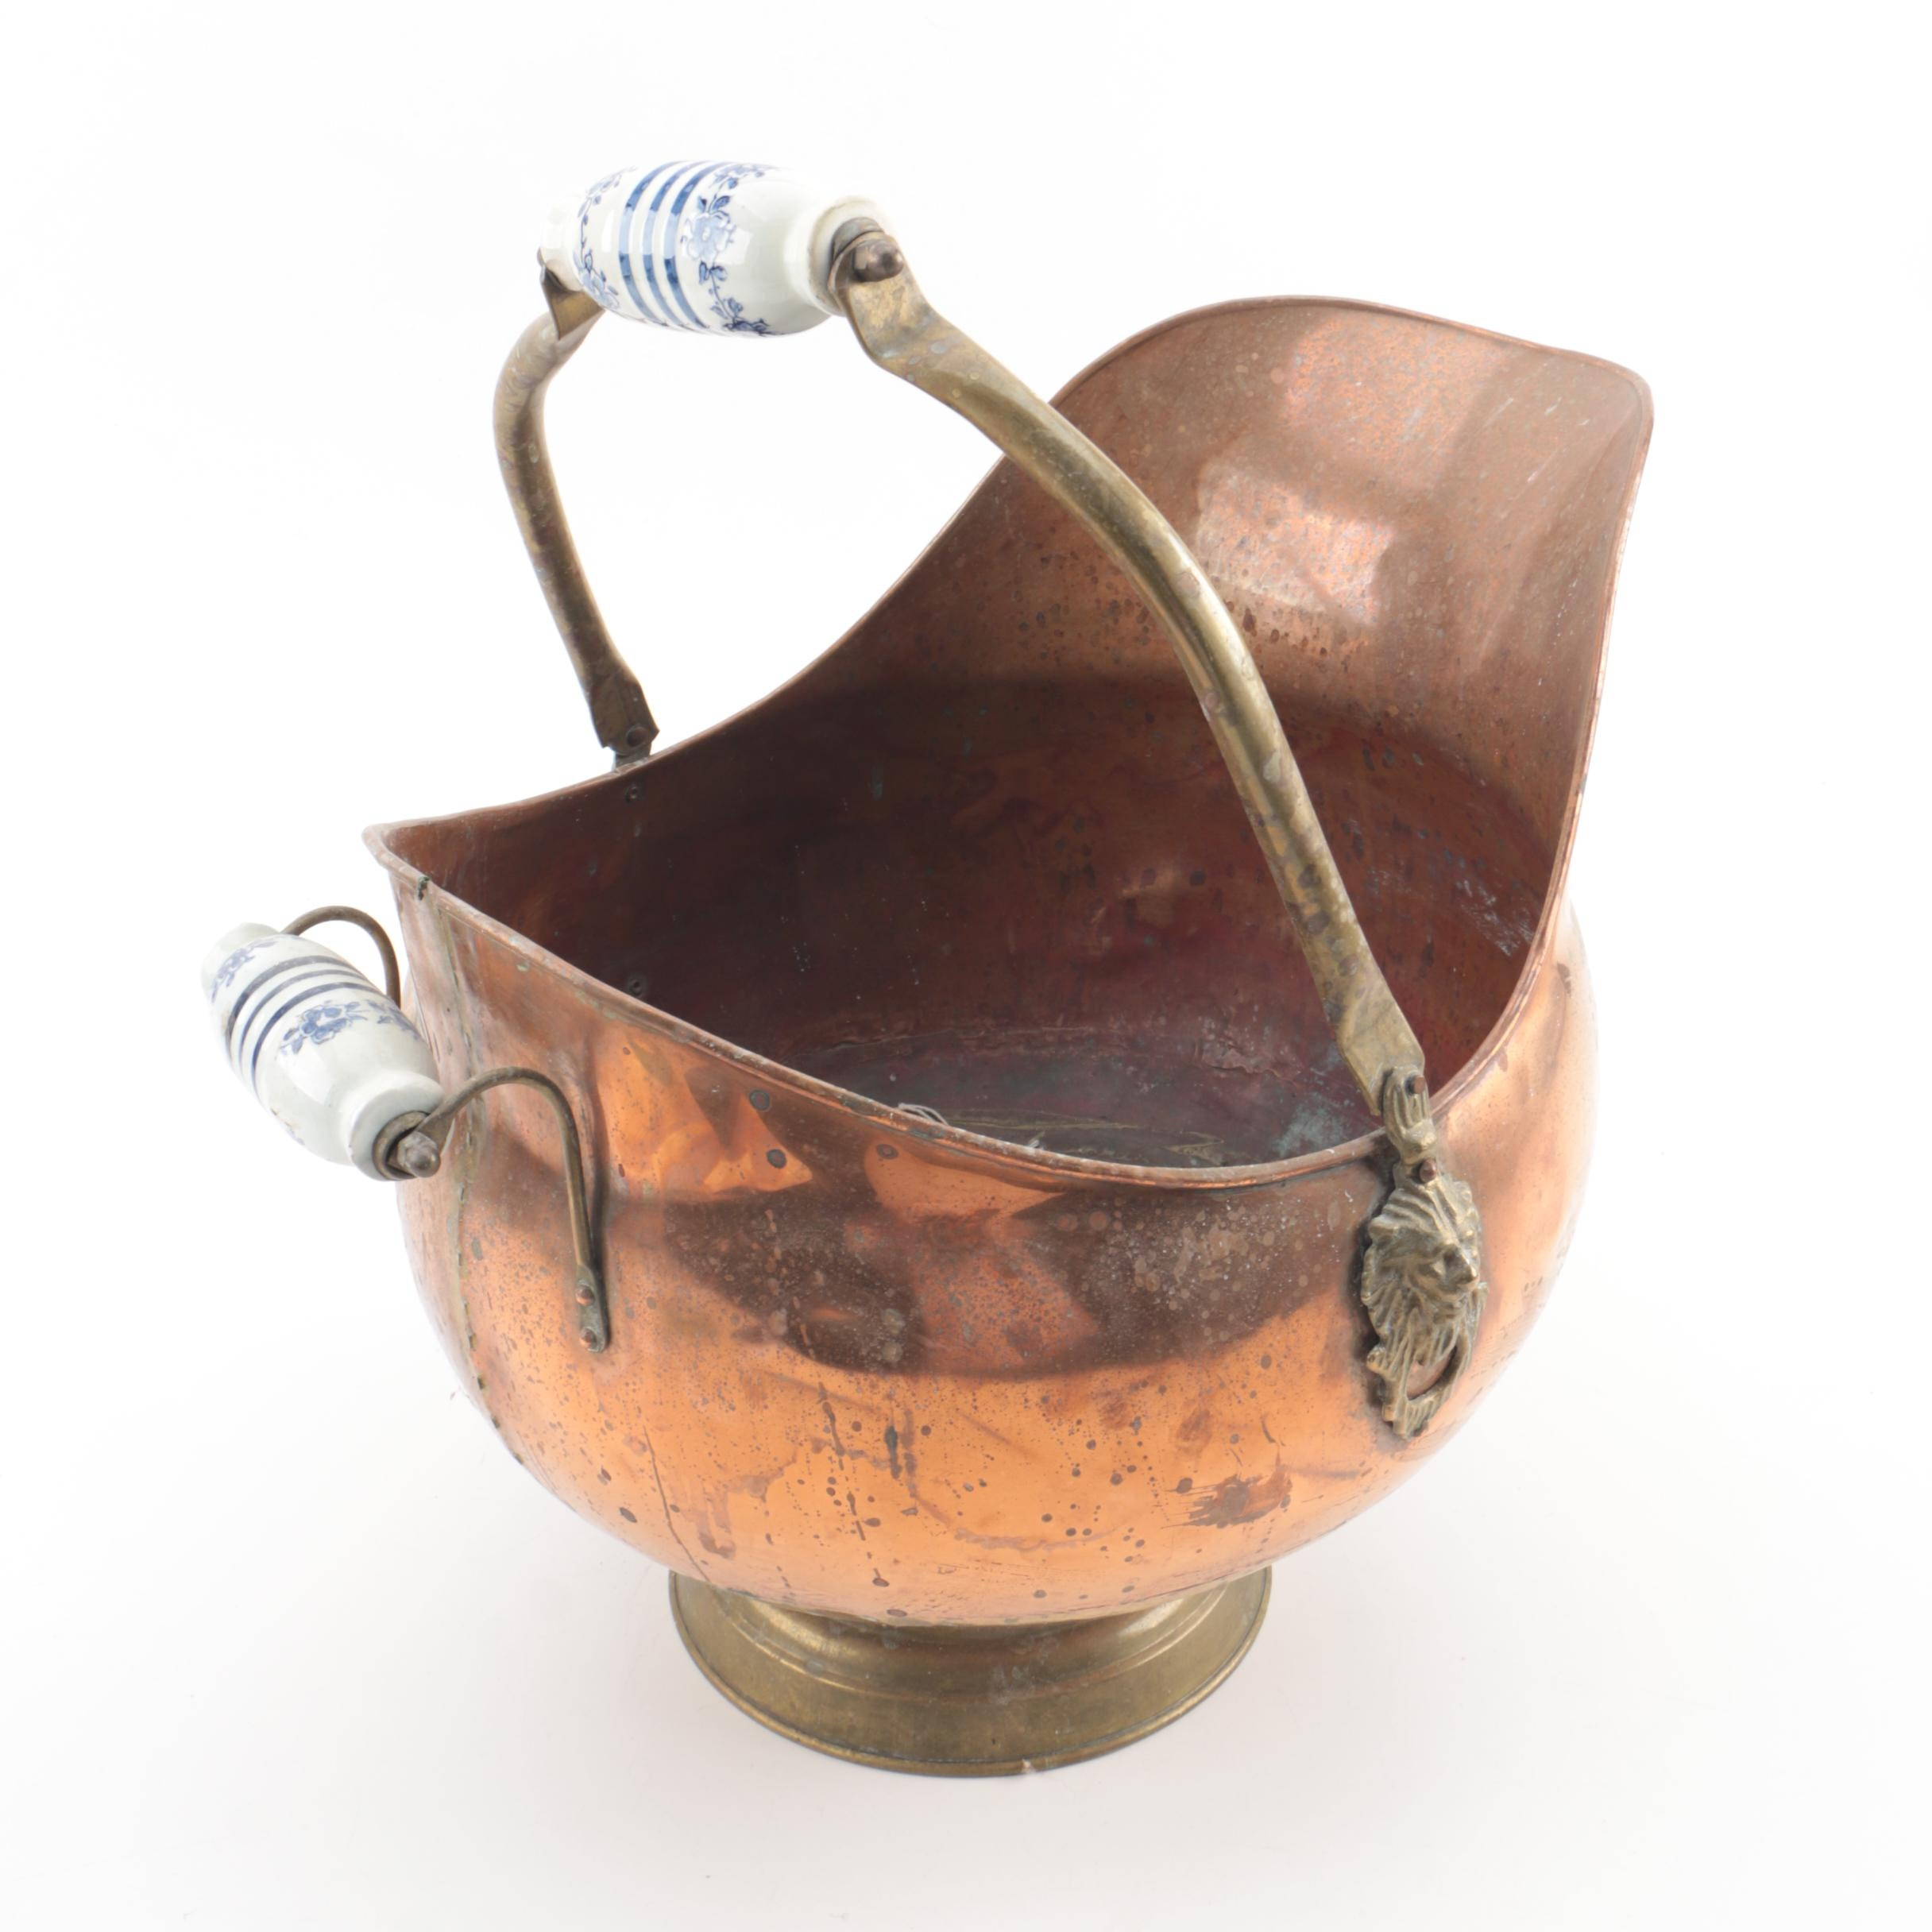 Copper Coal Scuttle with Porcelain Handles